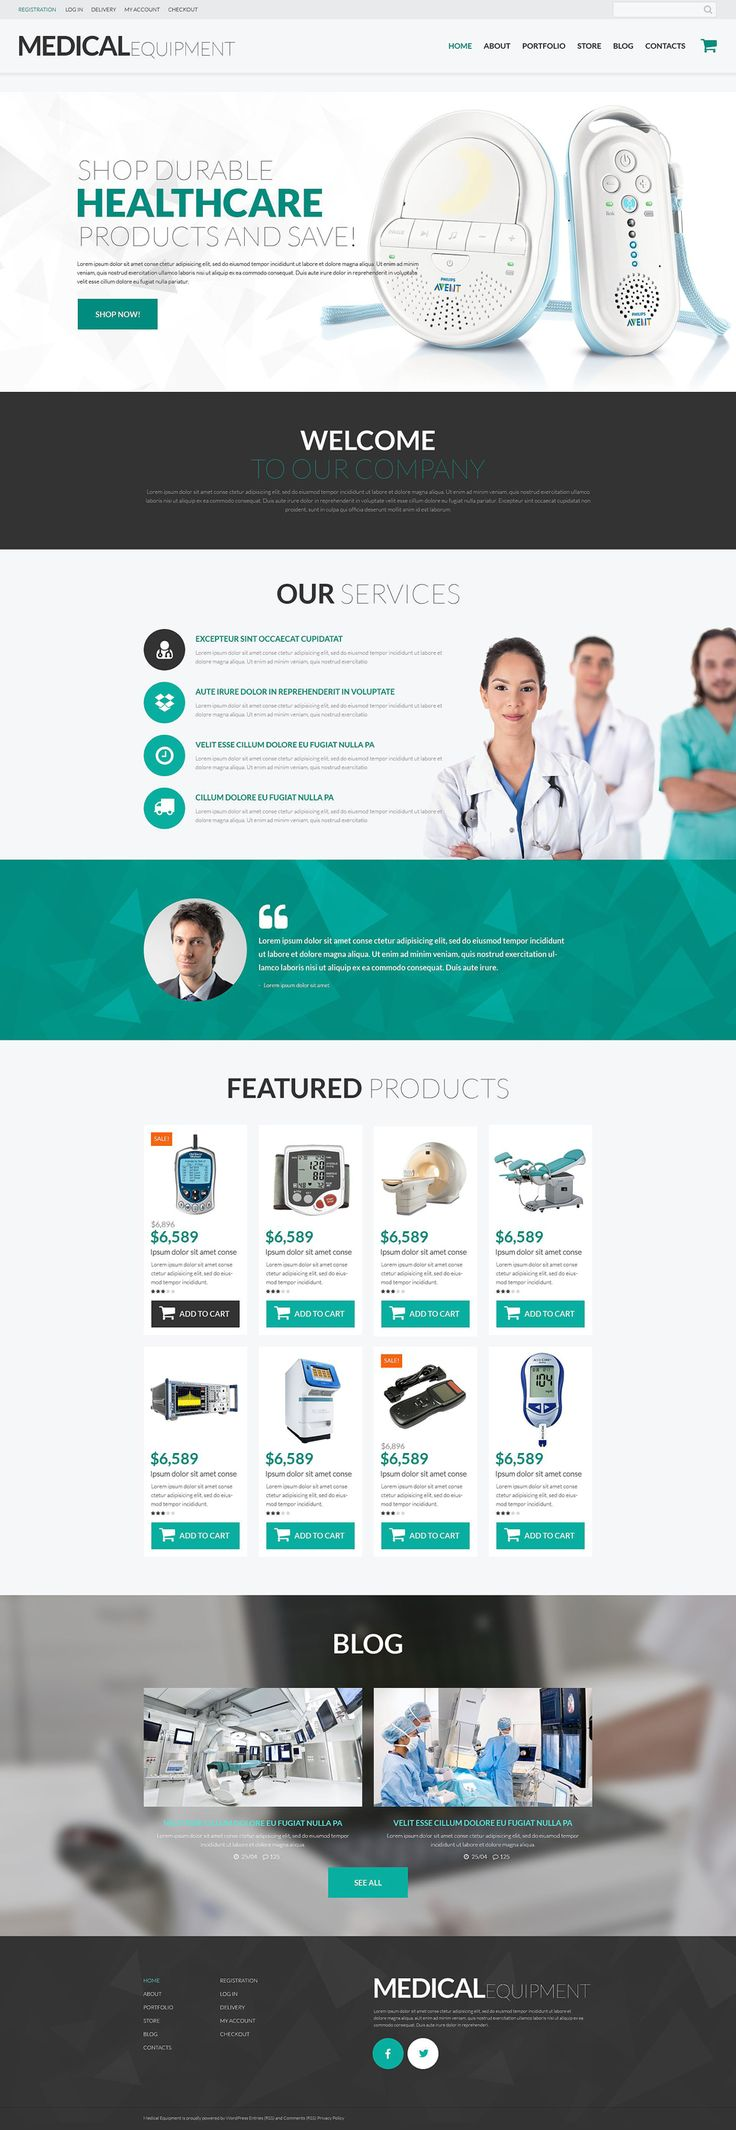 Medical Equipment #WordPress #WooCommerce #Responsive Theme